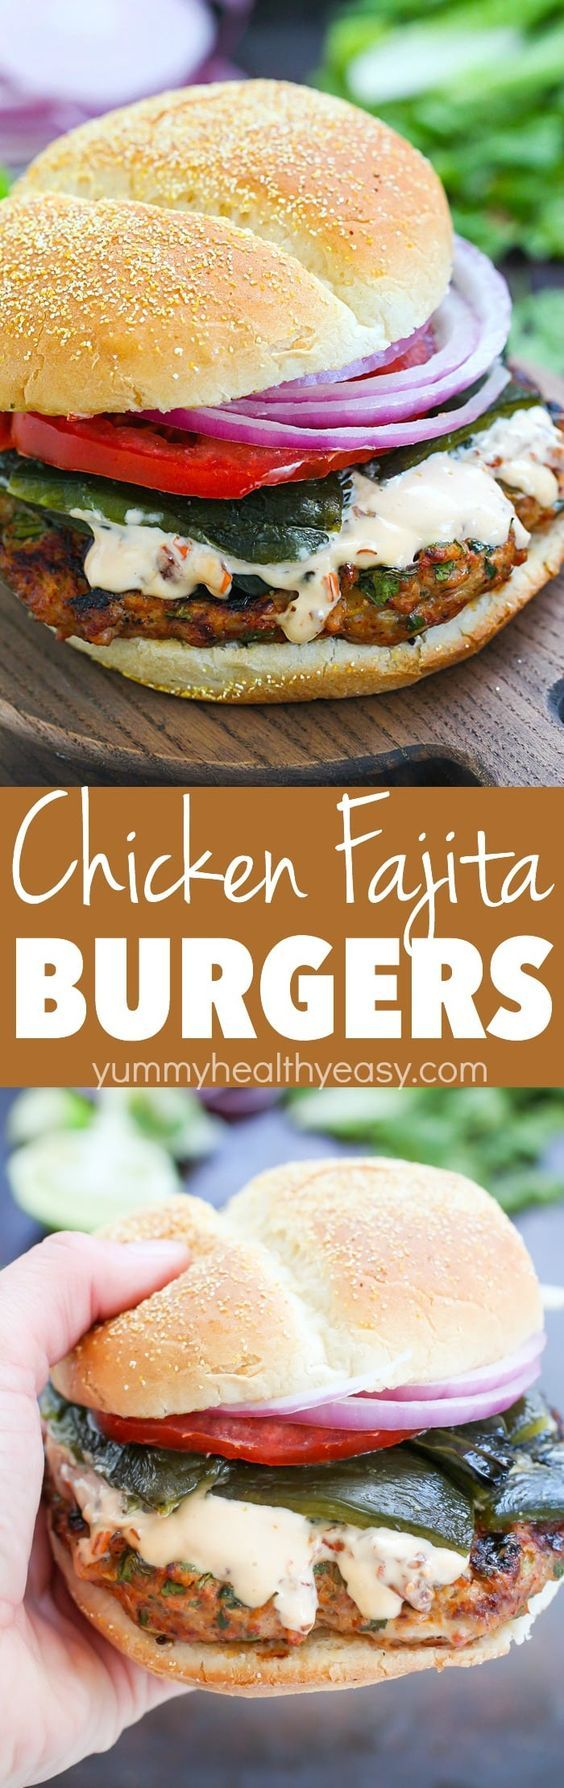 """Flavorful Chicken Fajita Burger with Roasted Peppers and Chipotle Mayonnaise Recipe via Yummy Healthy Easy """"My very favorite Burger Recipe! It contains all your favorite fajita flavors rolled into a burger! Flavorful Chicken Fajita Burger with Roasted Peppers and Chipotle Mayonnaise will be a dinner win!"""" #burgers #gourmetburgers #burgerrecipes #cookouts #grilling #barbecue #hamburgers #fathersday #fathersdayfood #bbq #partyfood #tailgating #superbowlfood #superbowl #summerfood #easylunches…"""